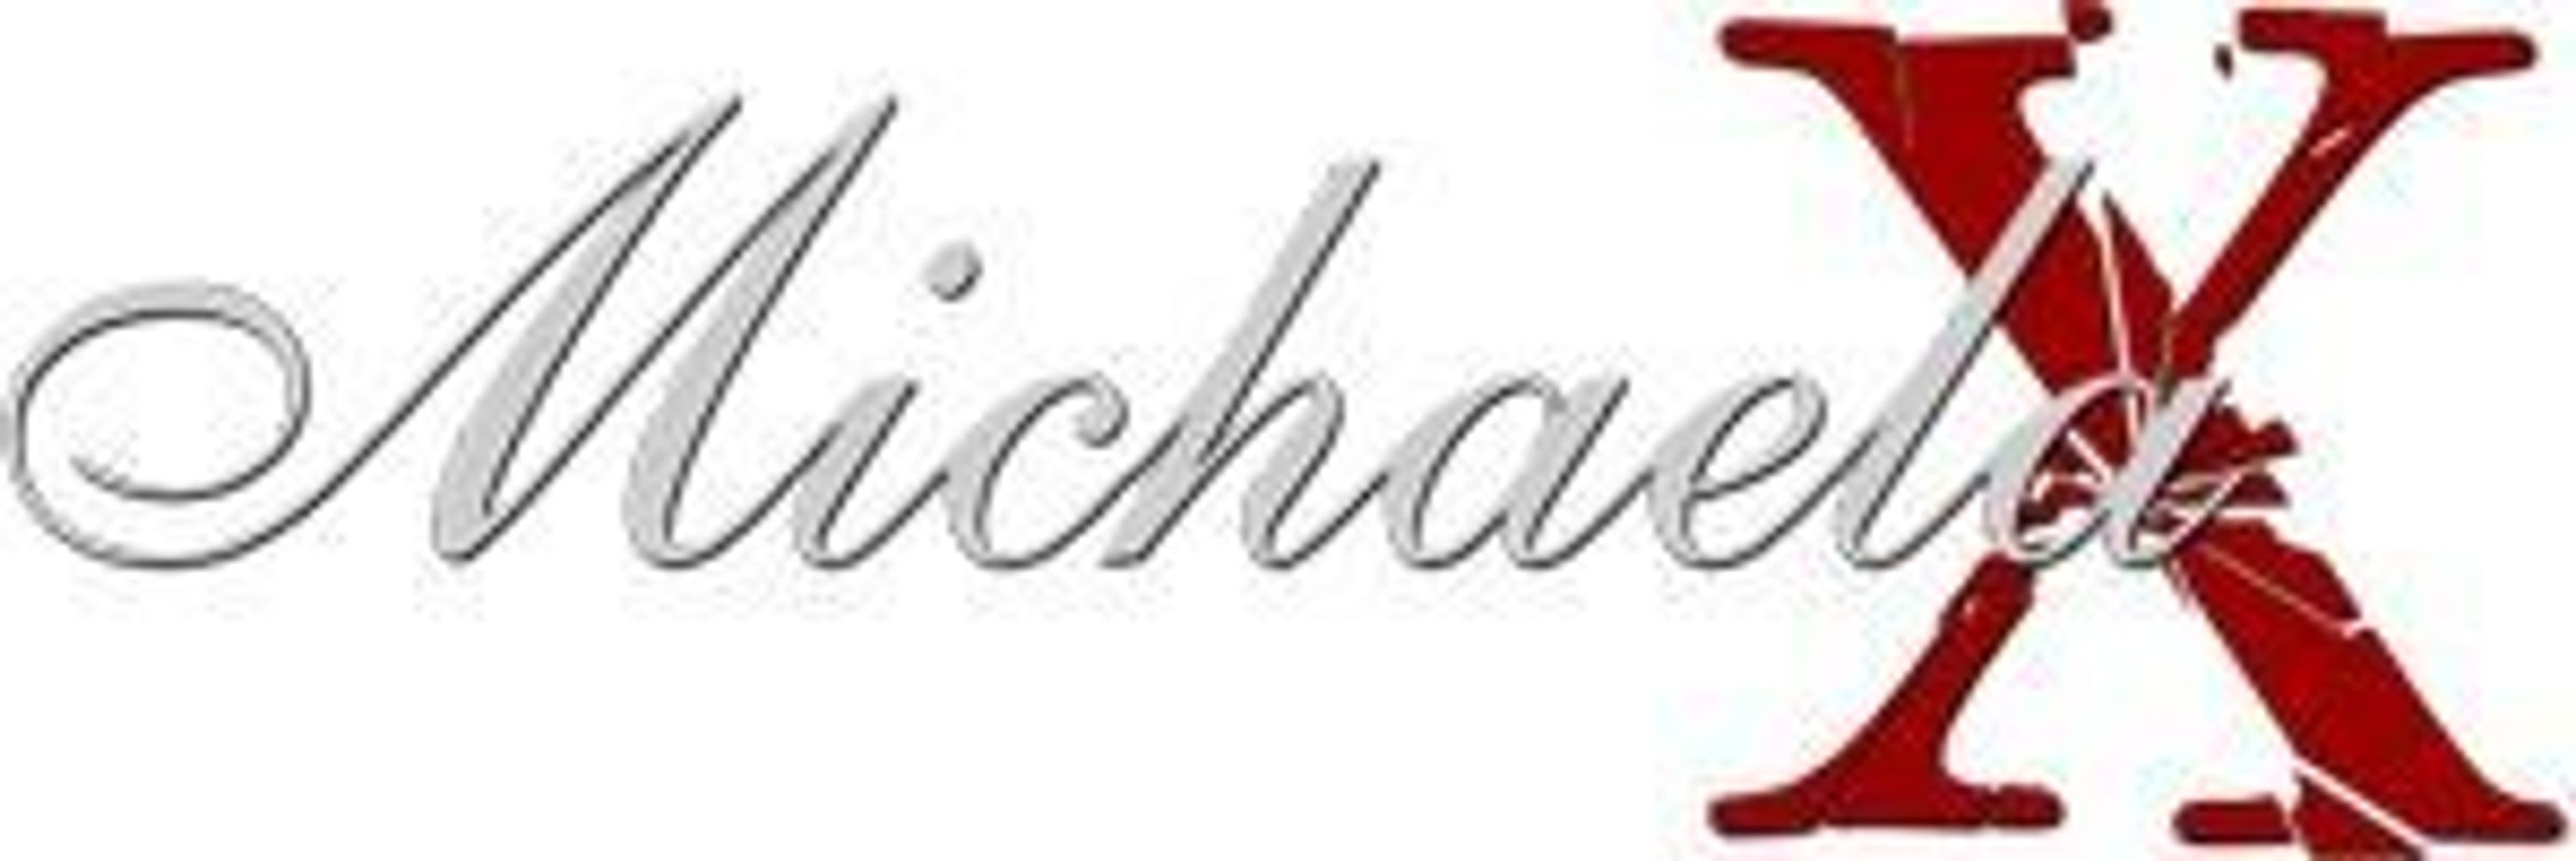 Zum Shop: MichaelaX-Fashion-Trade